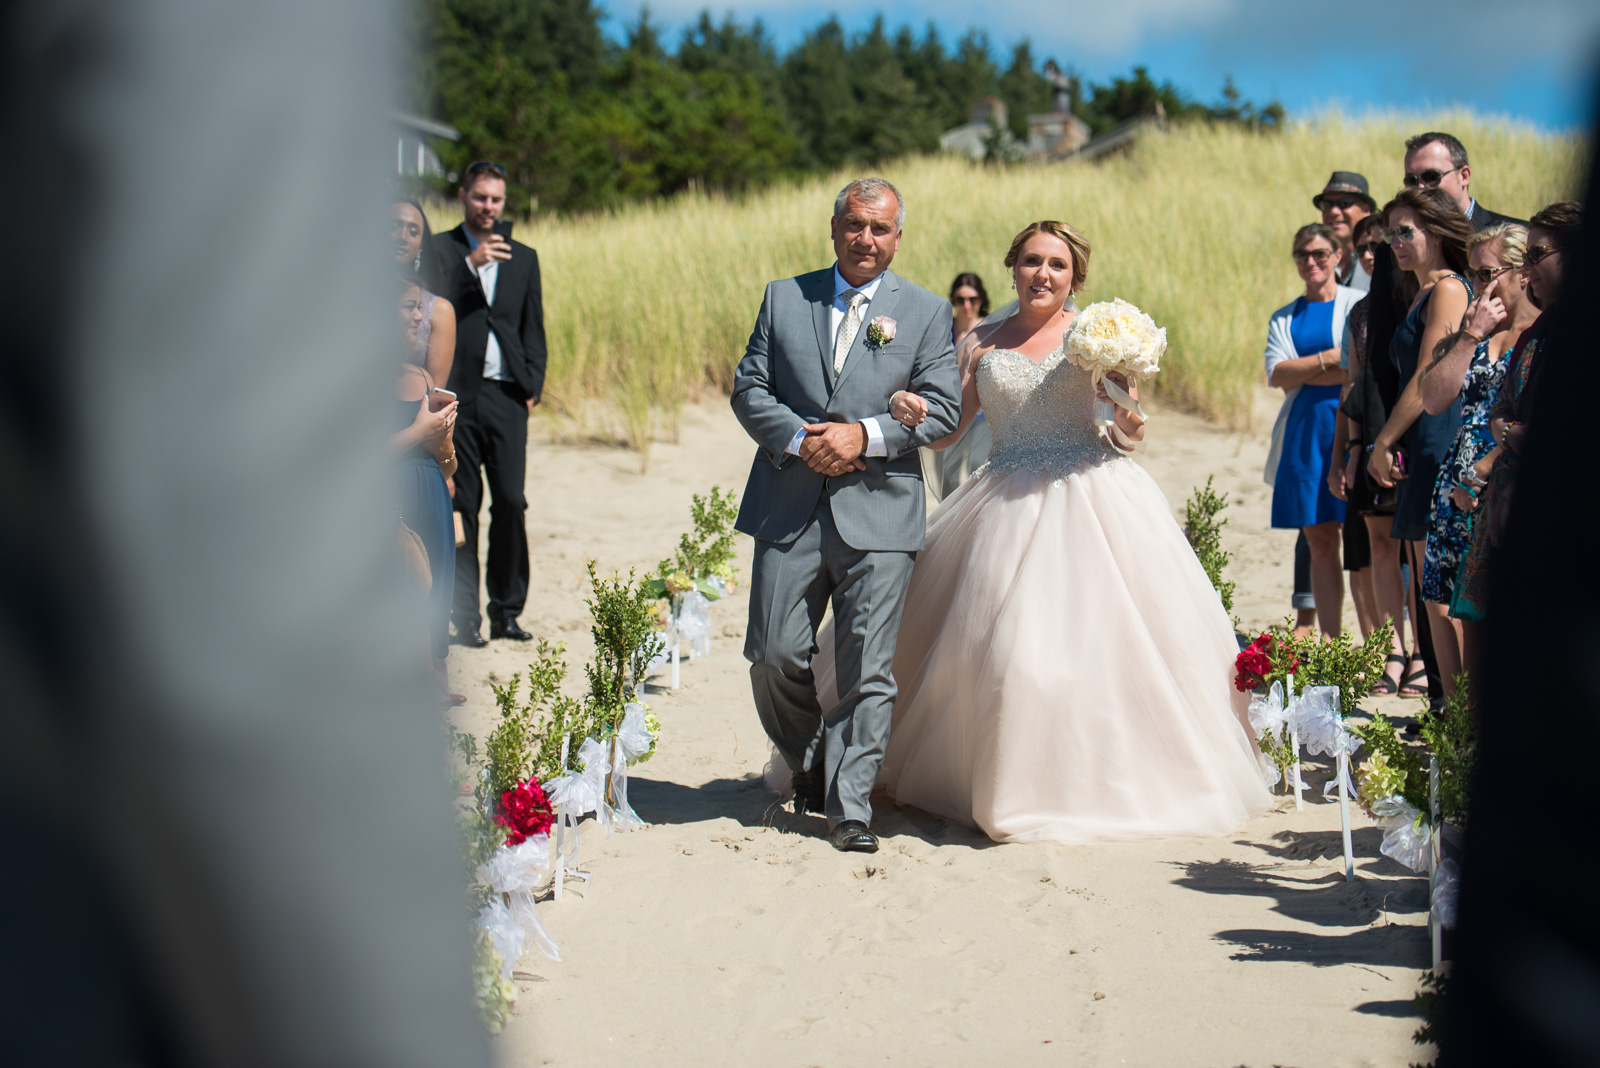 victoria-wedding-photographers-cannon-beach-oregon-wedding-16.jpg